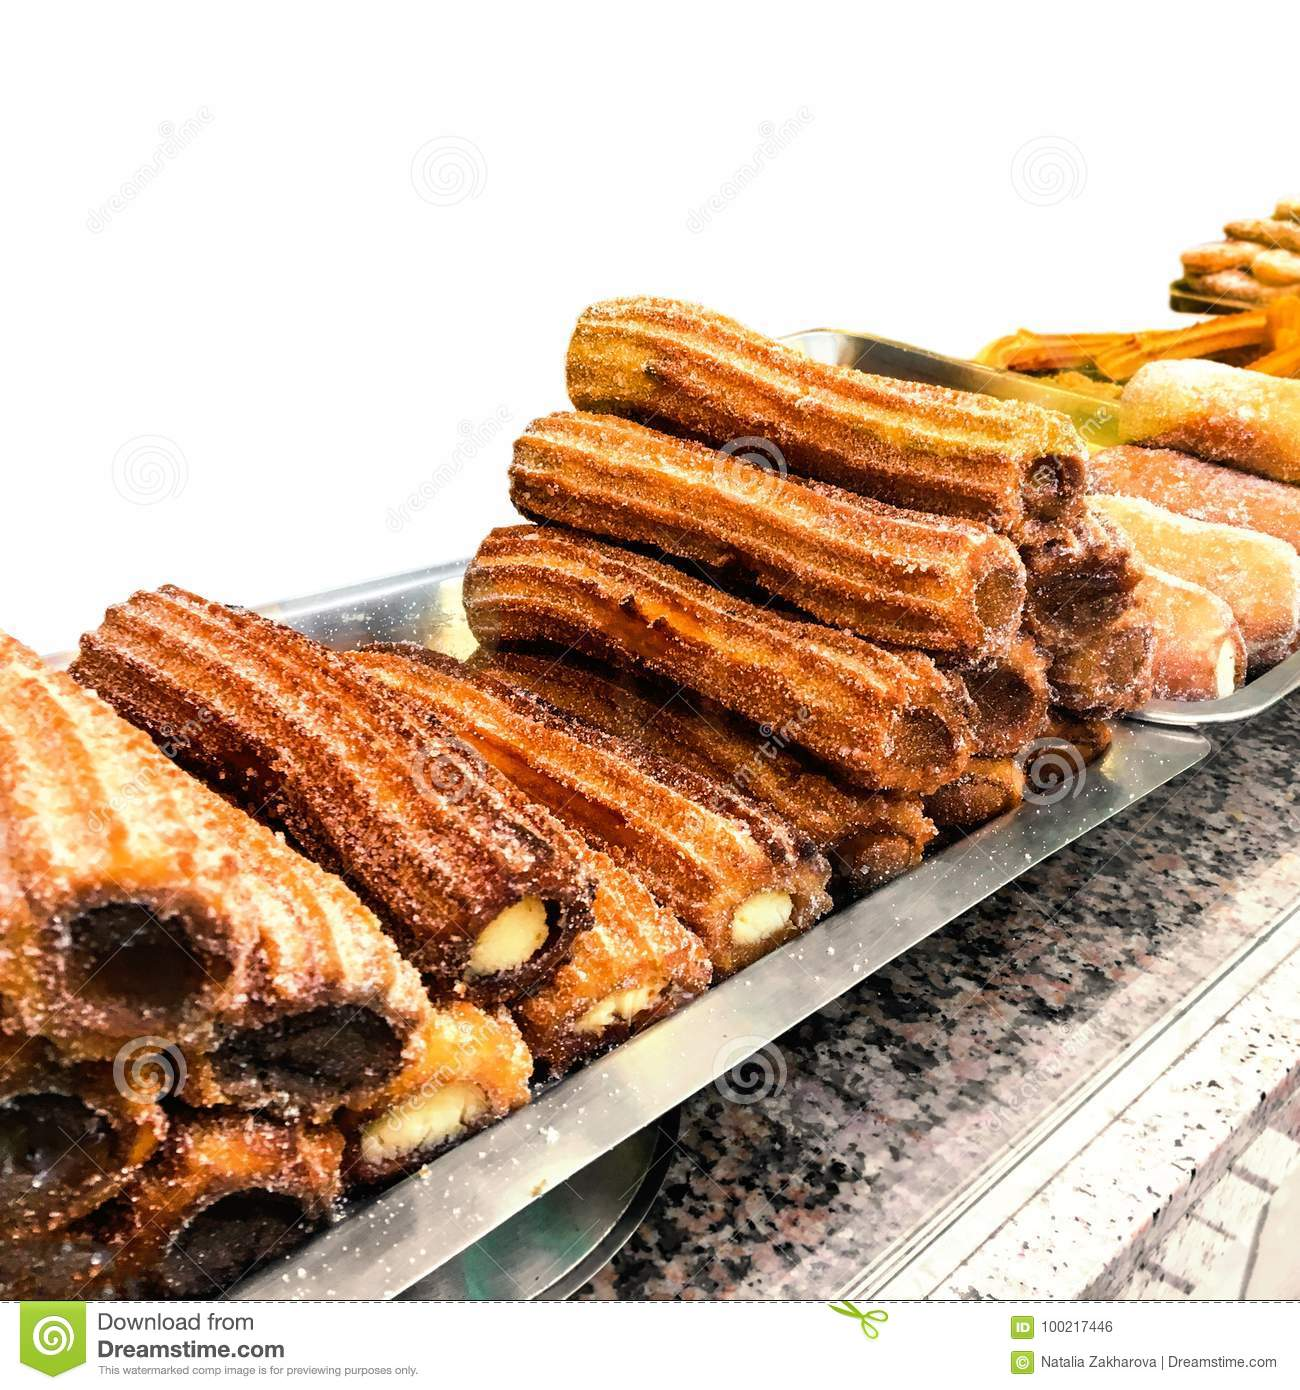 Churros on a market stall in a bakery shop. Sweet Famous Spanish